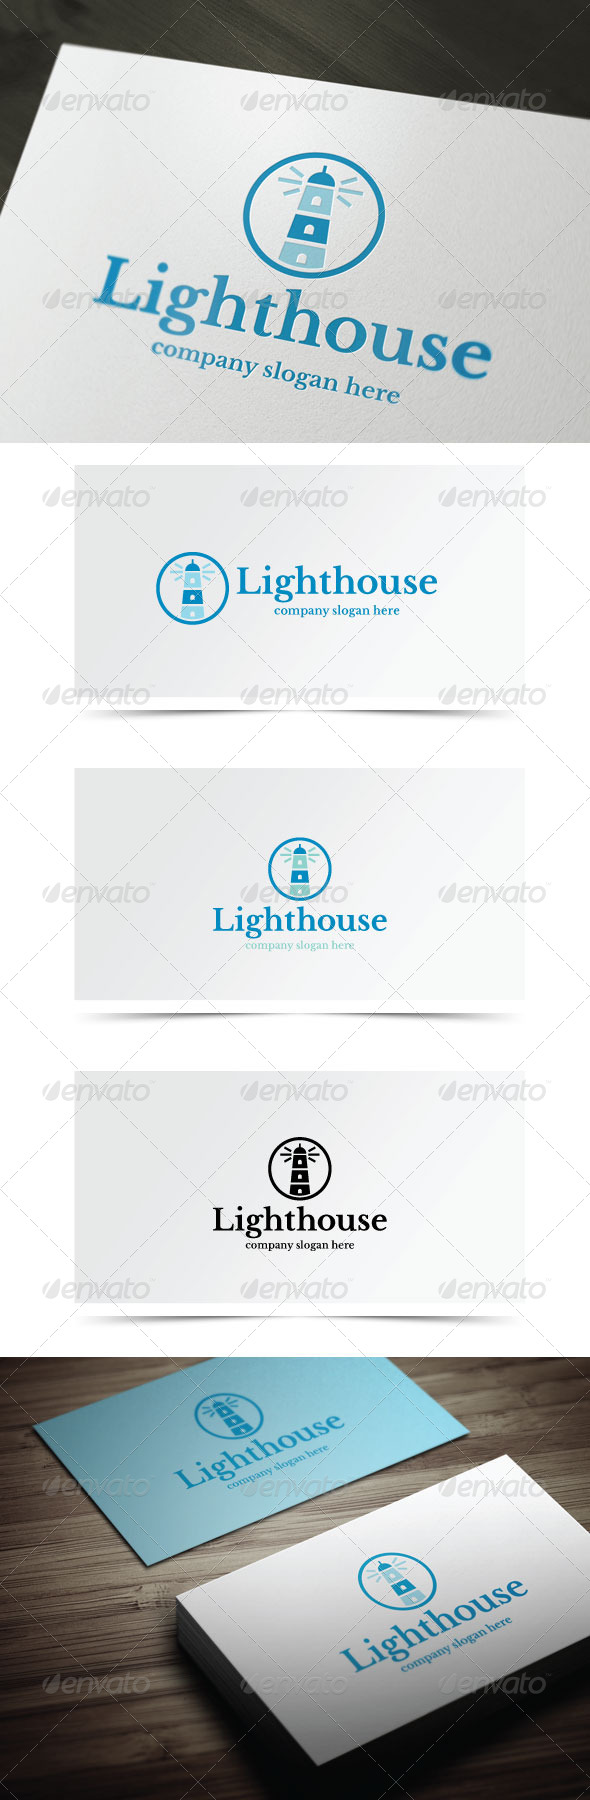 GraphicRiver Lighthouse 6332828